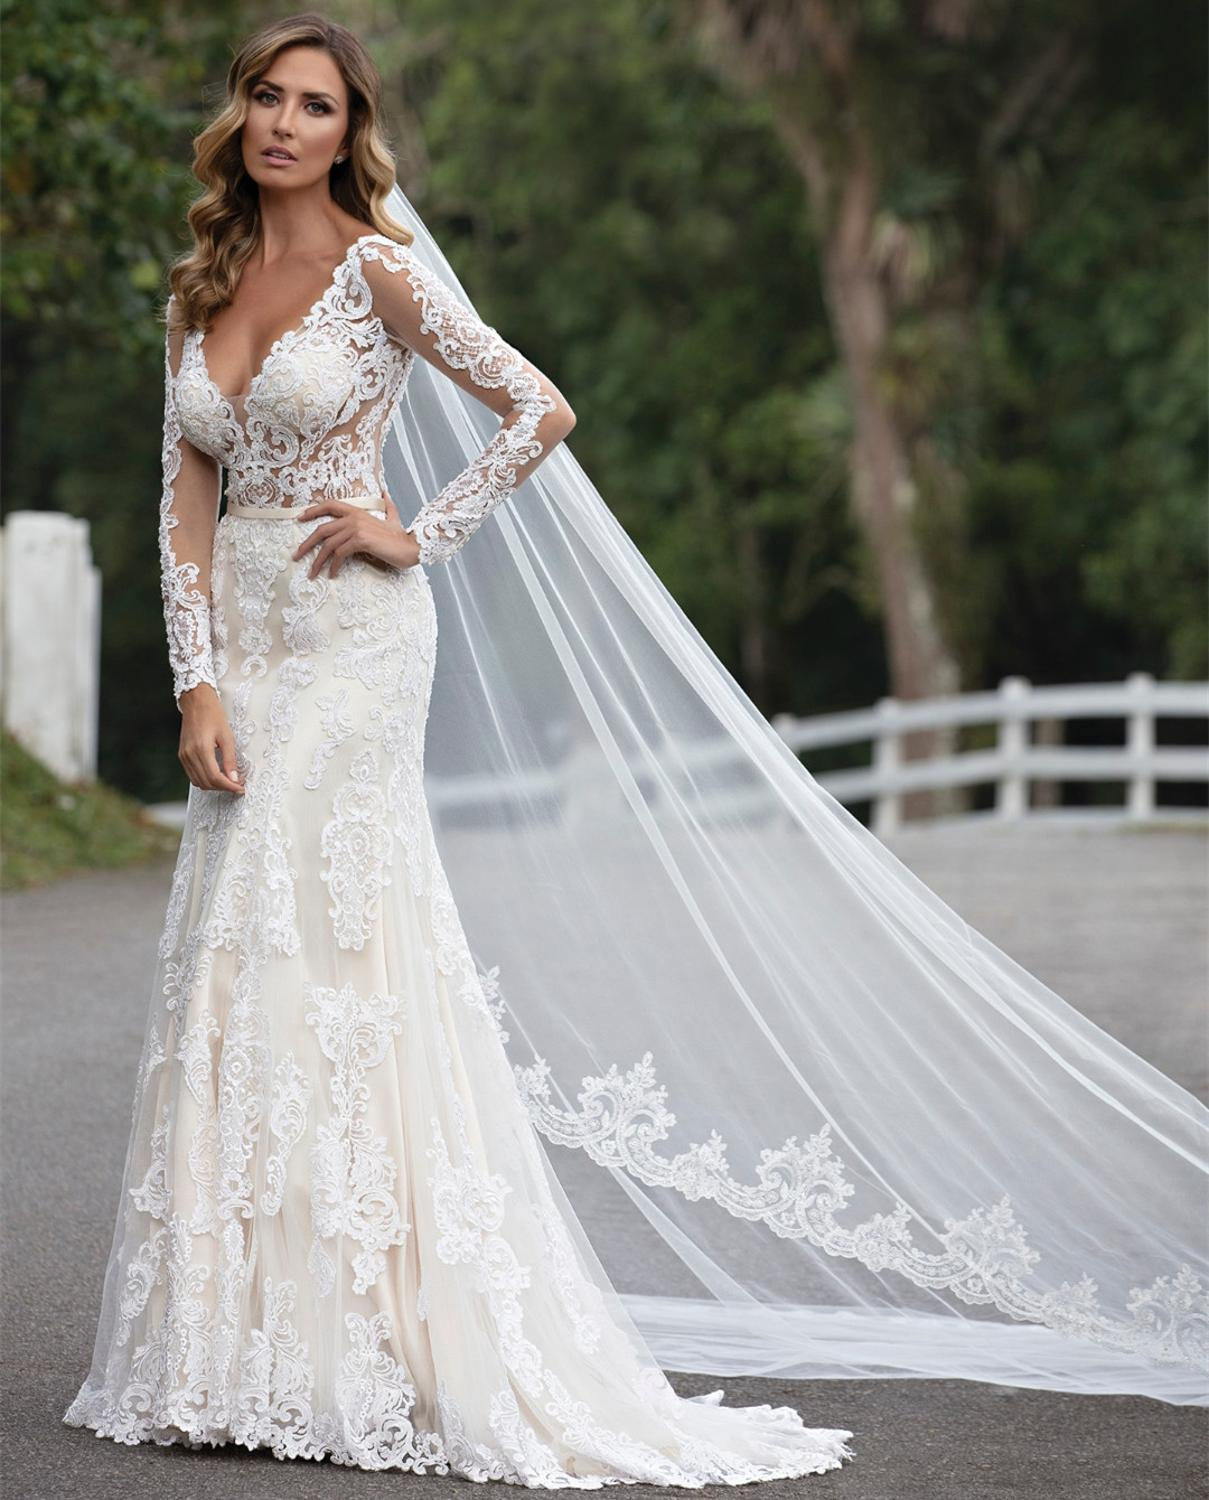 Custom Made 2020 New Design Wedding Dresses Mermaid V-neck Long Sleeve Tulle Lace Crystal Sexy Luxury Bridal Wedding Gowns CO9